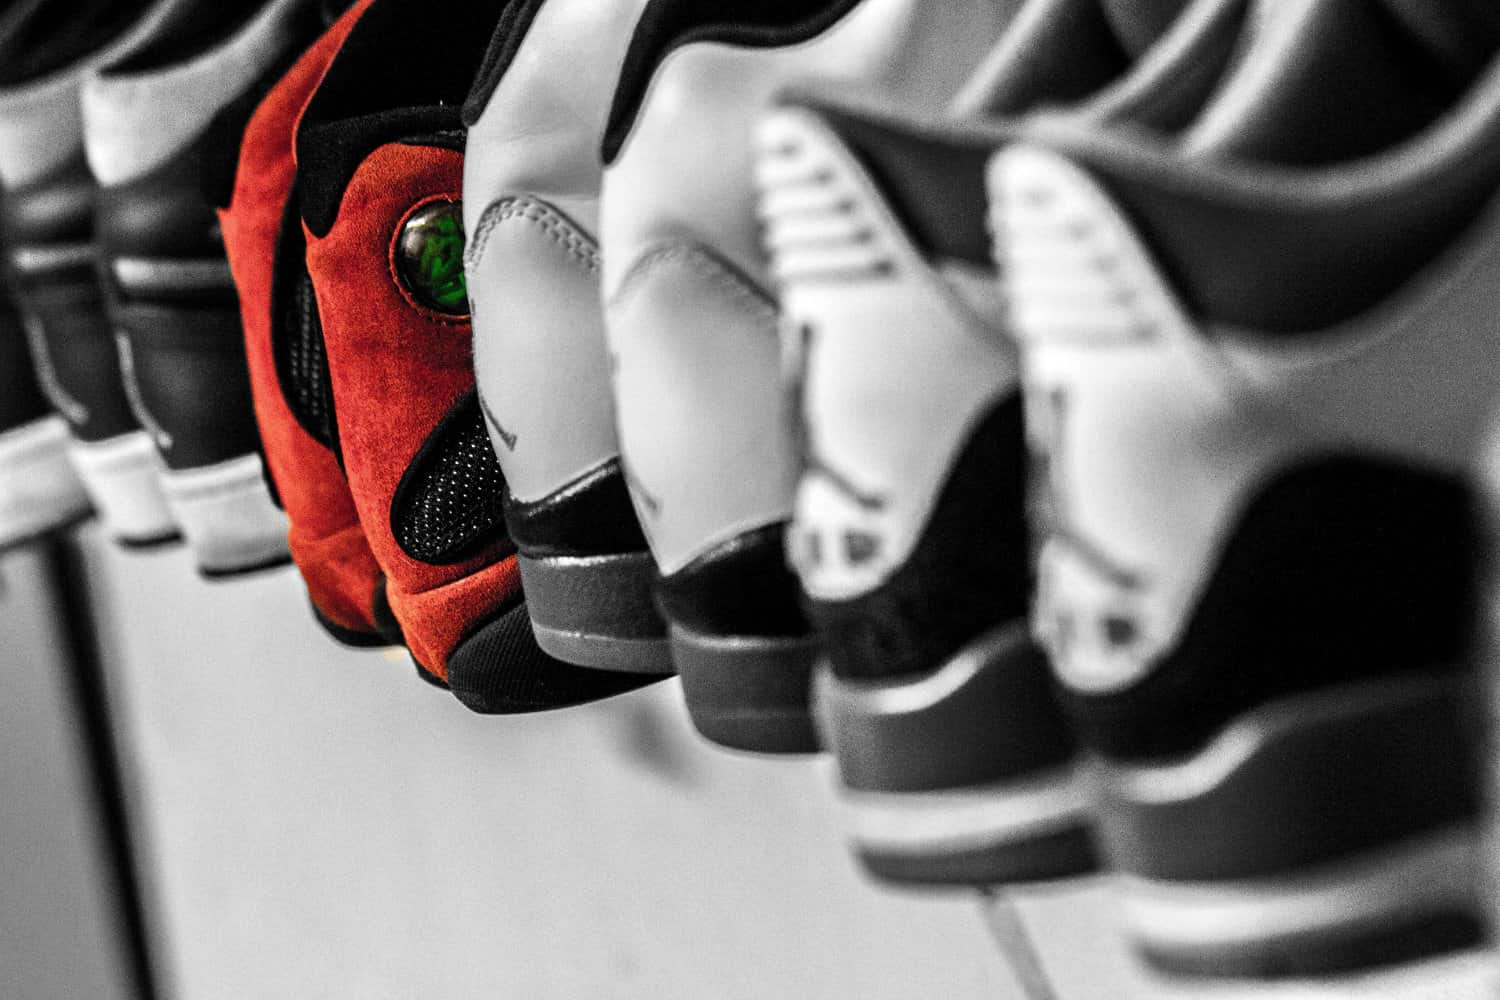 How To Organize Your Shoes Smartly: 6 Important Tips. Tightly packed shoes on the shelf